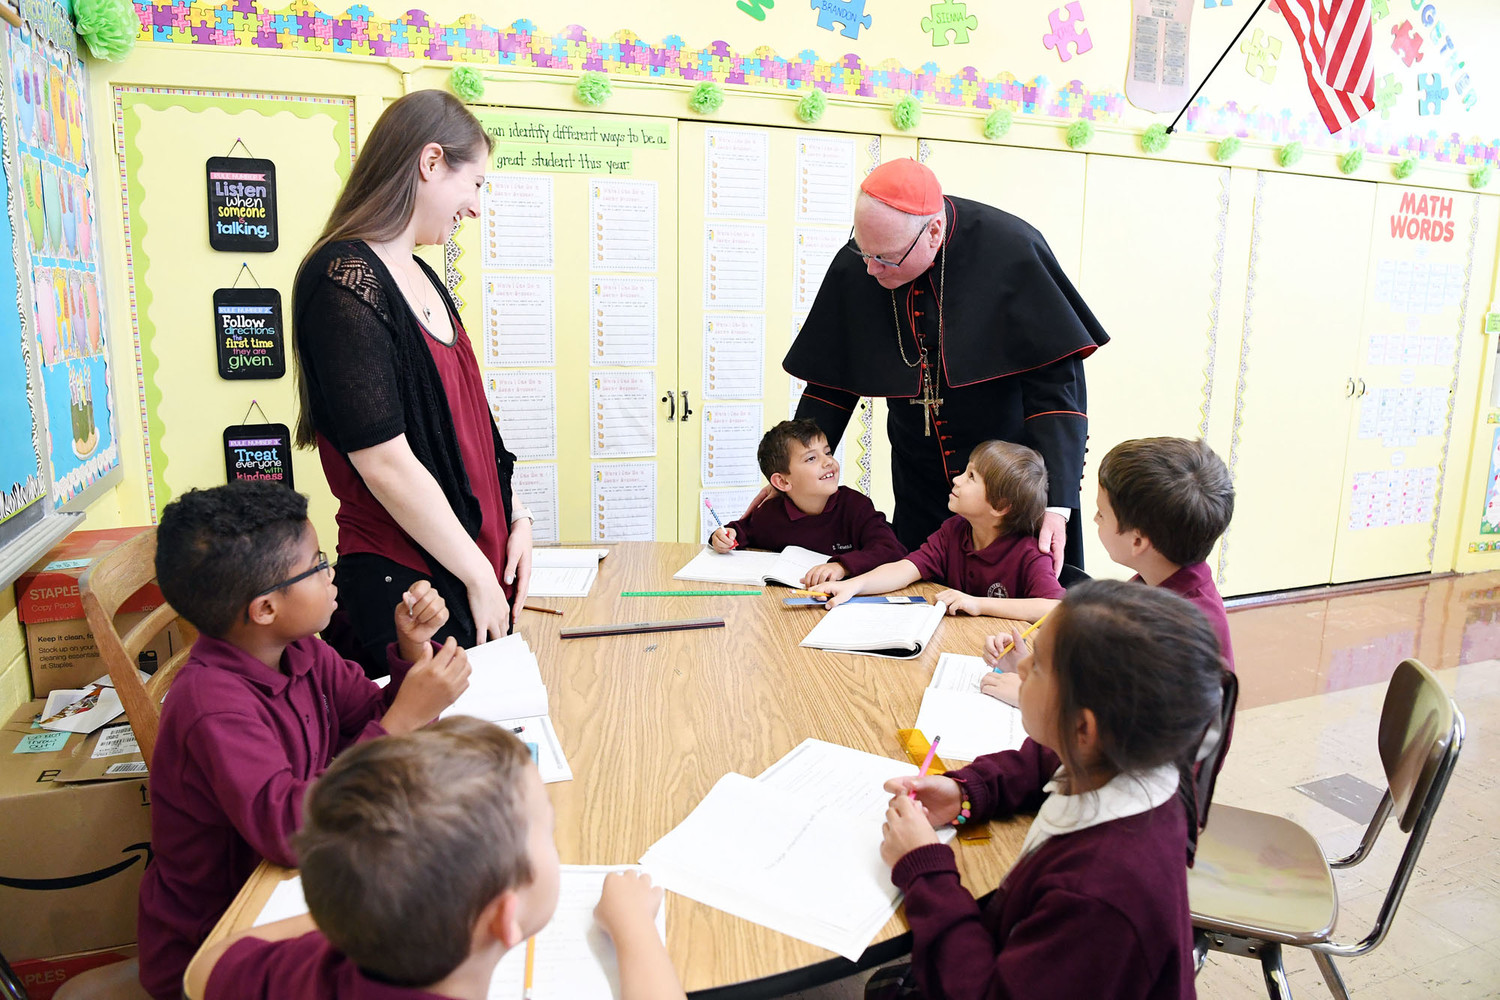 Cardinal Dolan visits teacher Jennifer Nygard's second-grade class at St. Teresa's School on Staten Island Oct. 5. The cardinal also celebrated Mass for the school's students and staff. St. Teresa's successful showing in the archdiocese's Renew + Rebuild parish fund-raising campaign means air conditioning will be installed in school classrooms and in Conran Hall.